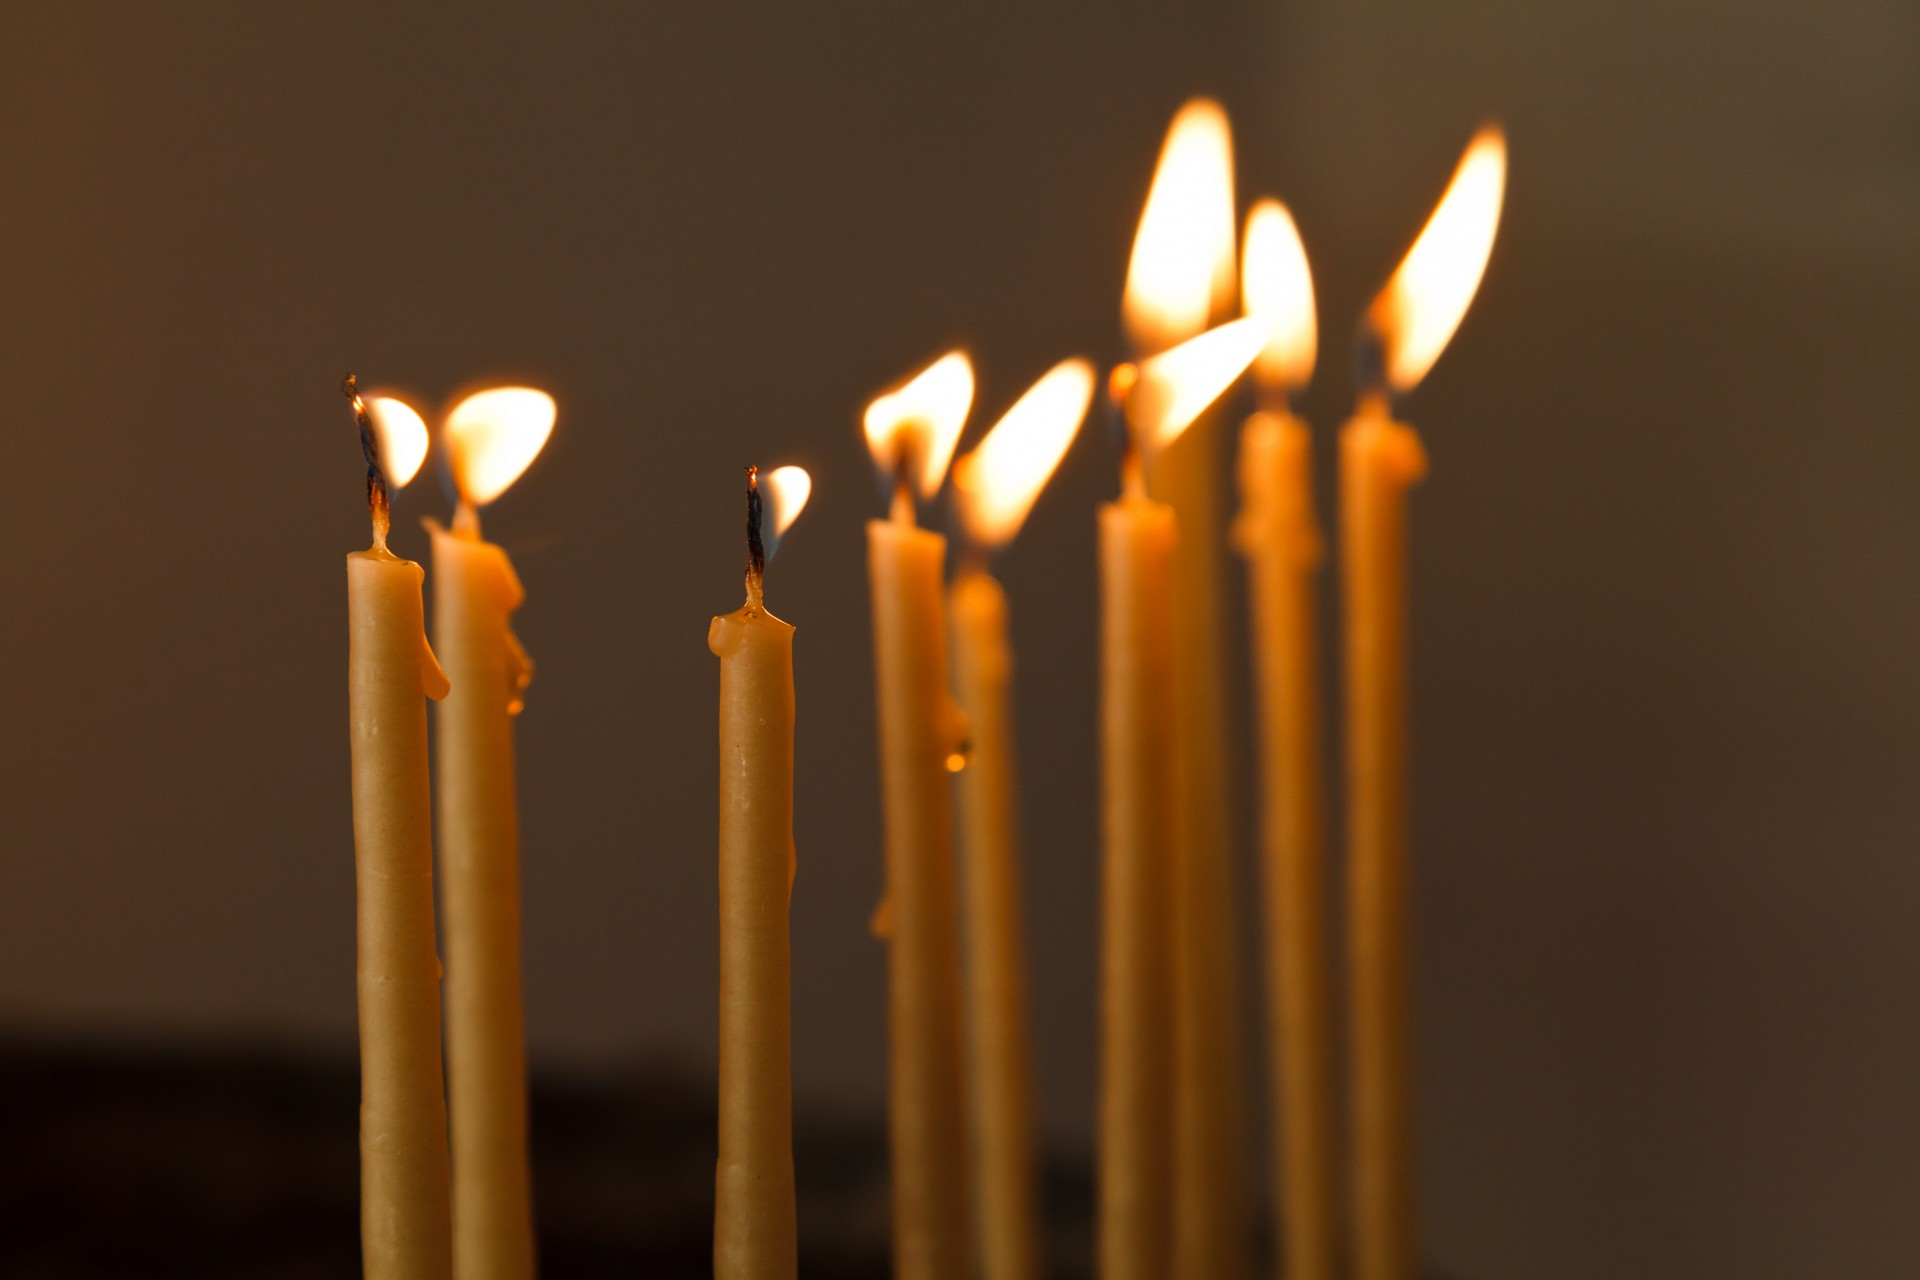 Church Candles Thin Candles In Church Free Stock Photo Public Domain